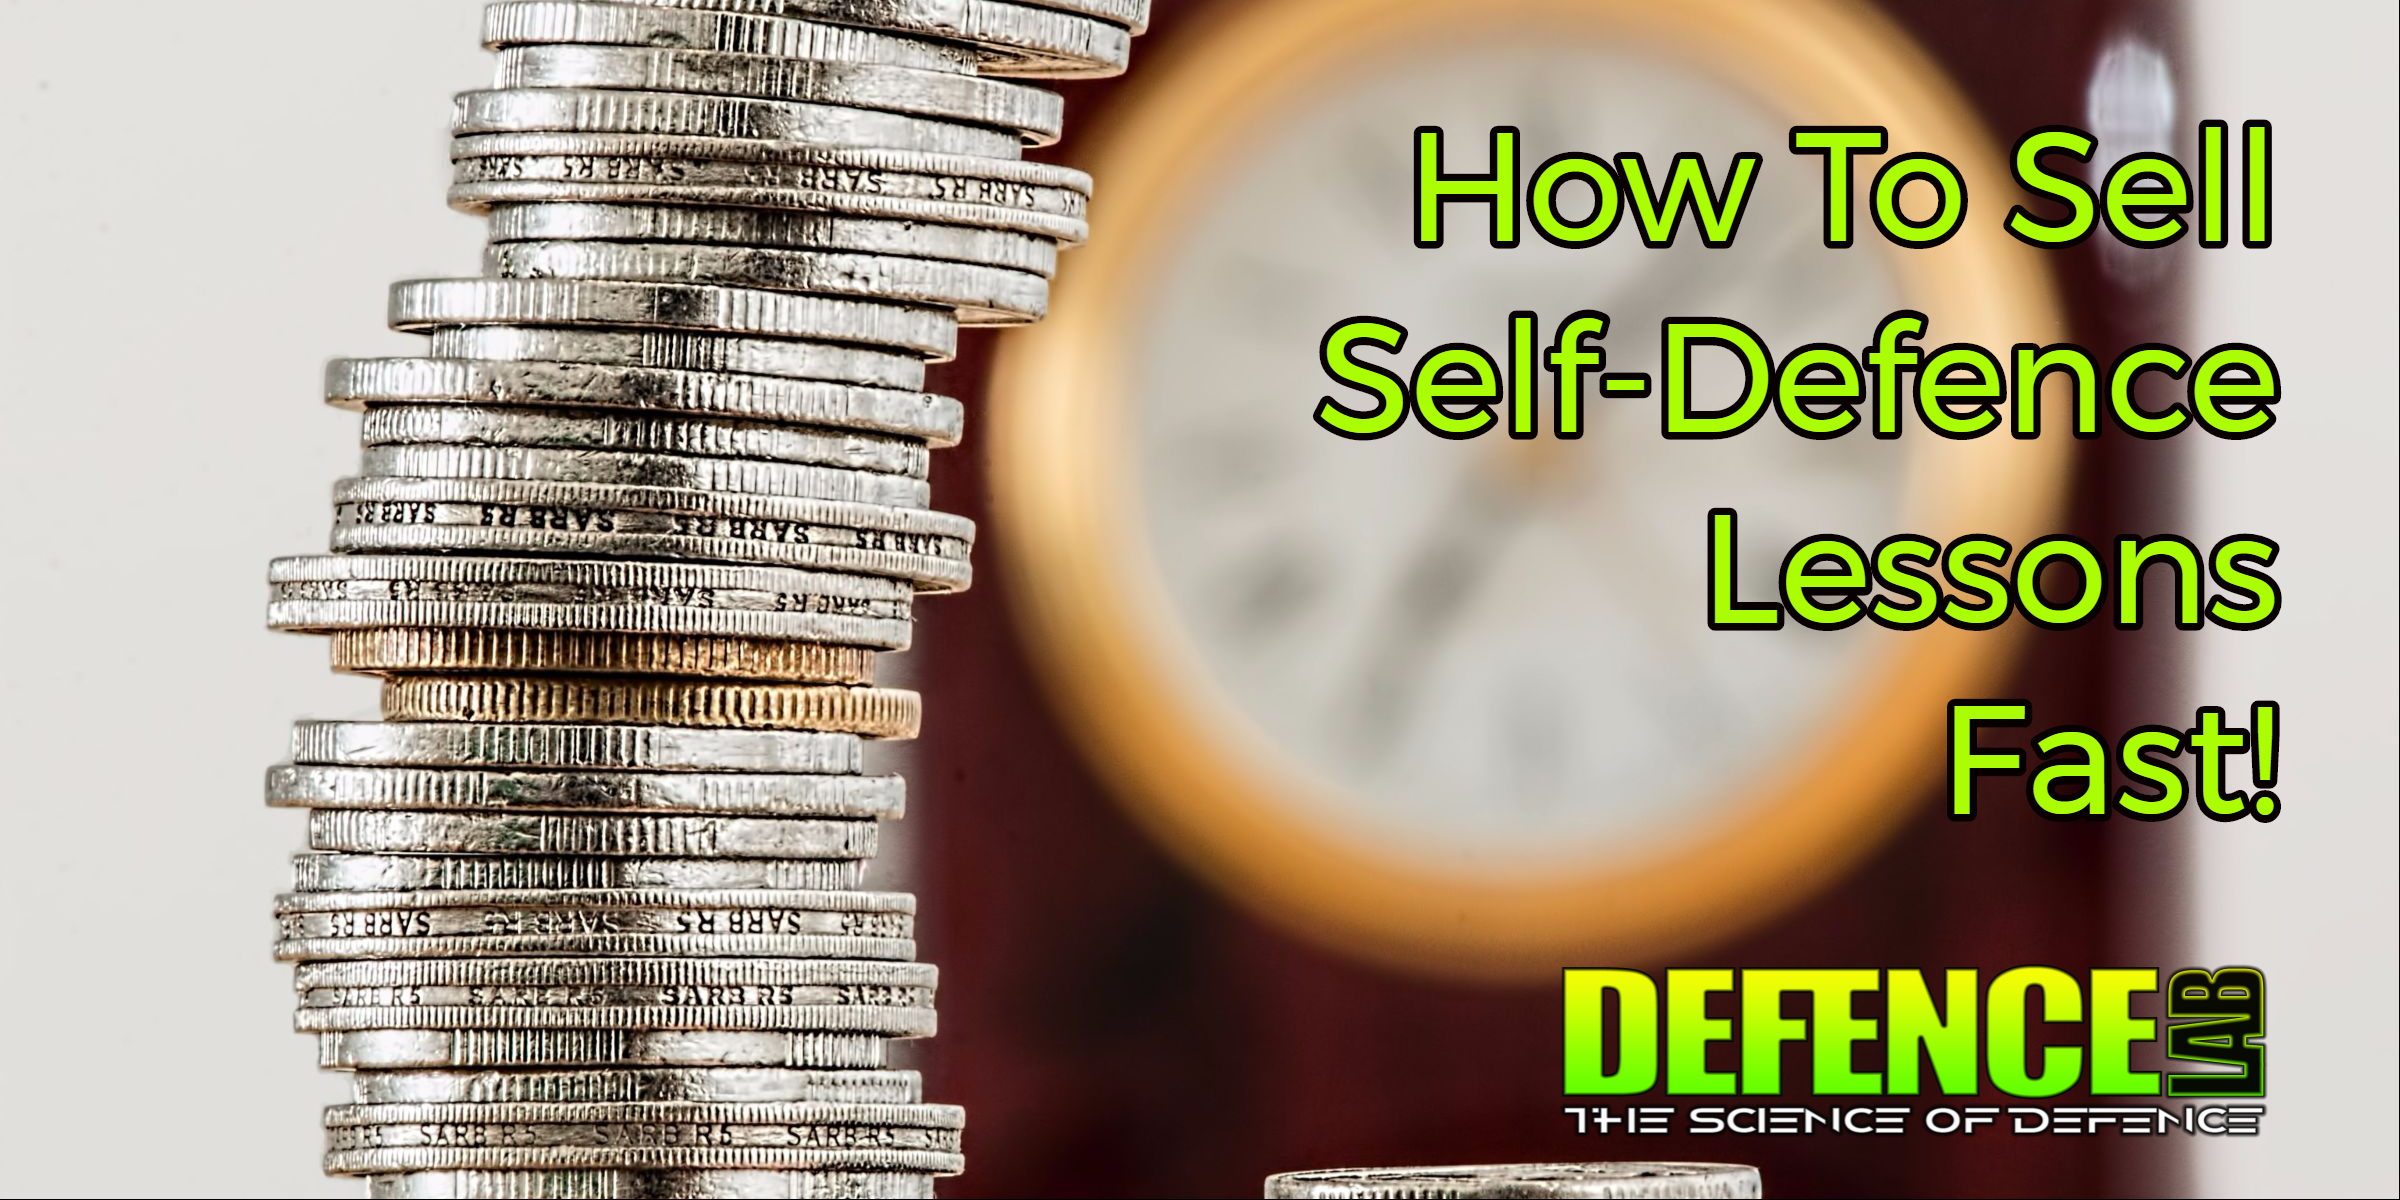 How To Sell Self-Defence Lessons (Fast)